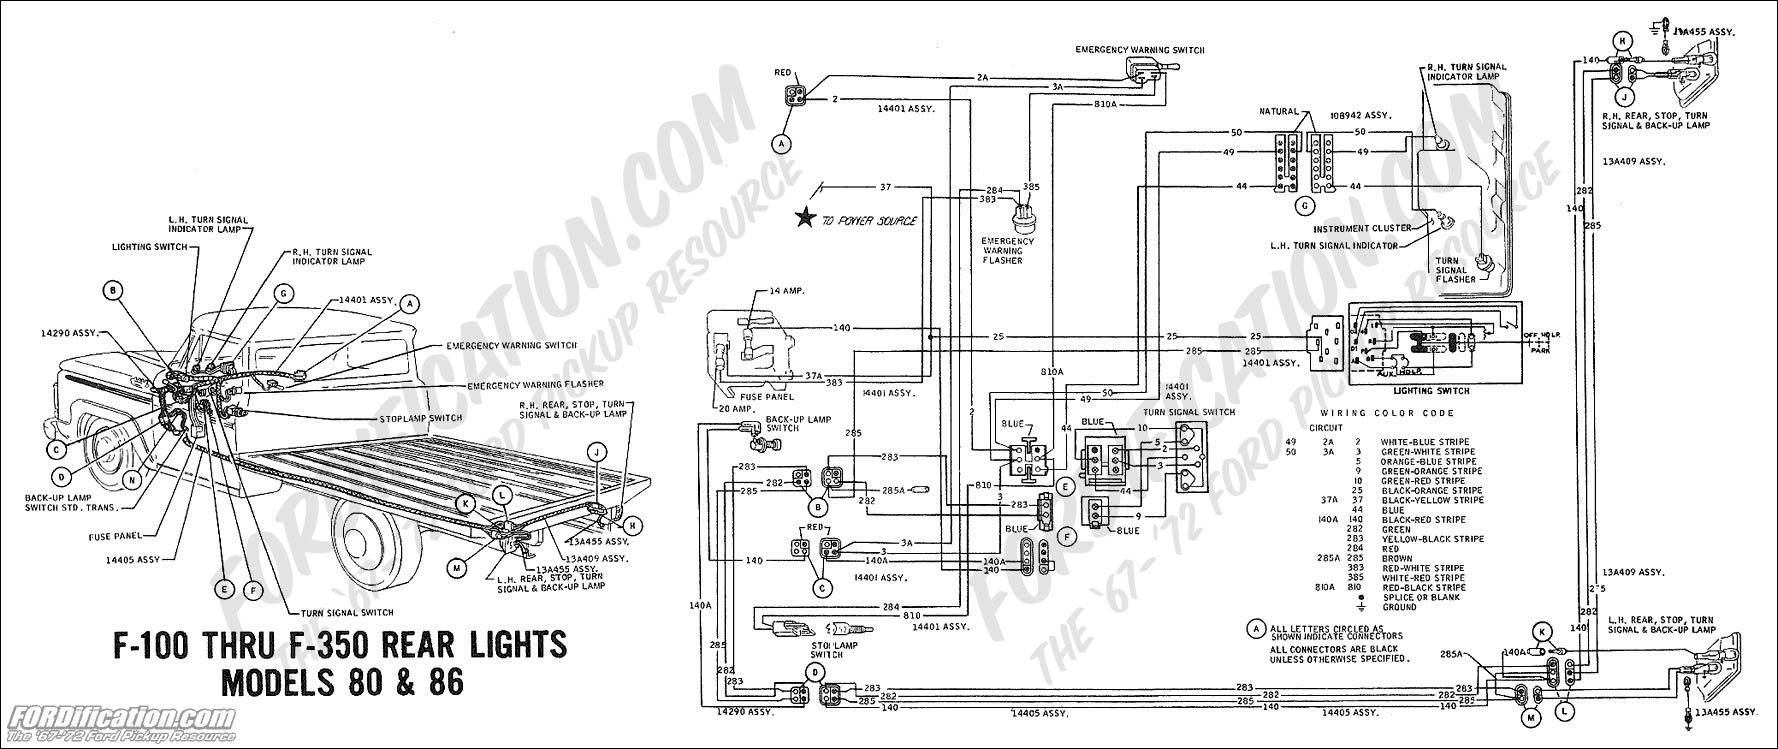 wiring_69rearlights mdls80 86 ford truck technical drawings and schematics section h wiring 2013 Ford F350 Wiring Diagram at cos-gaming.co